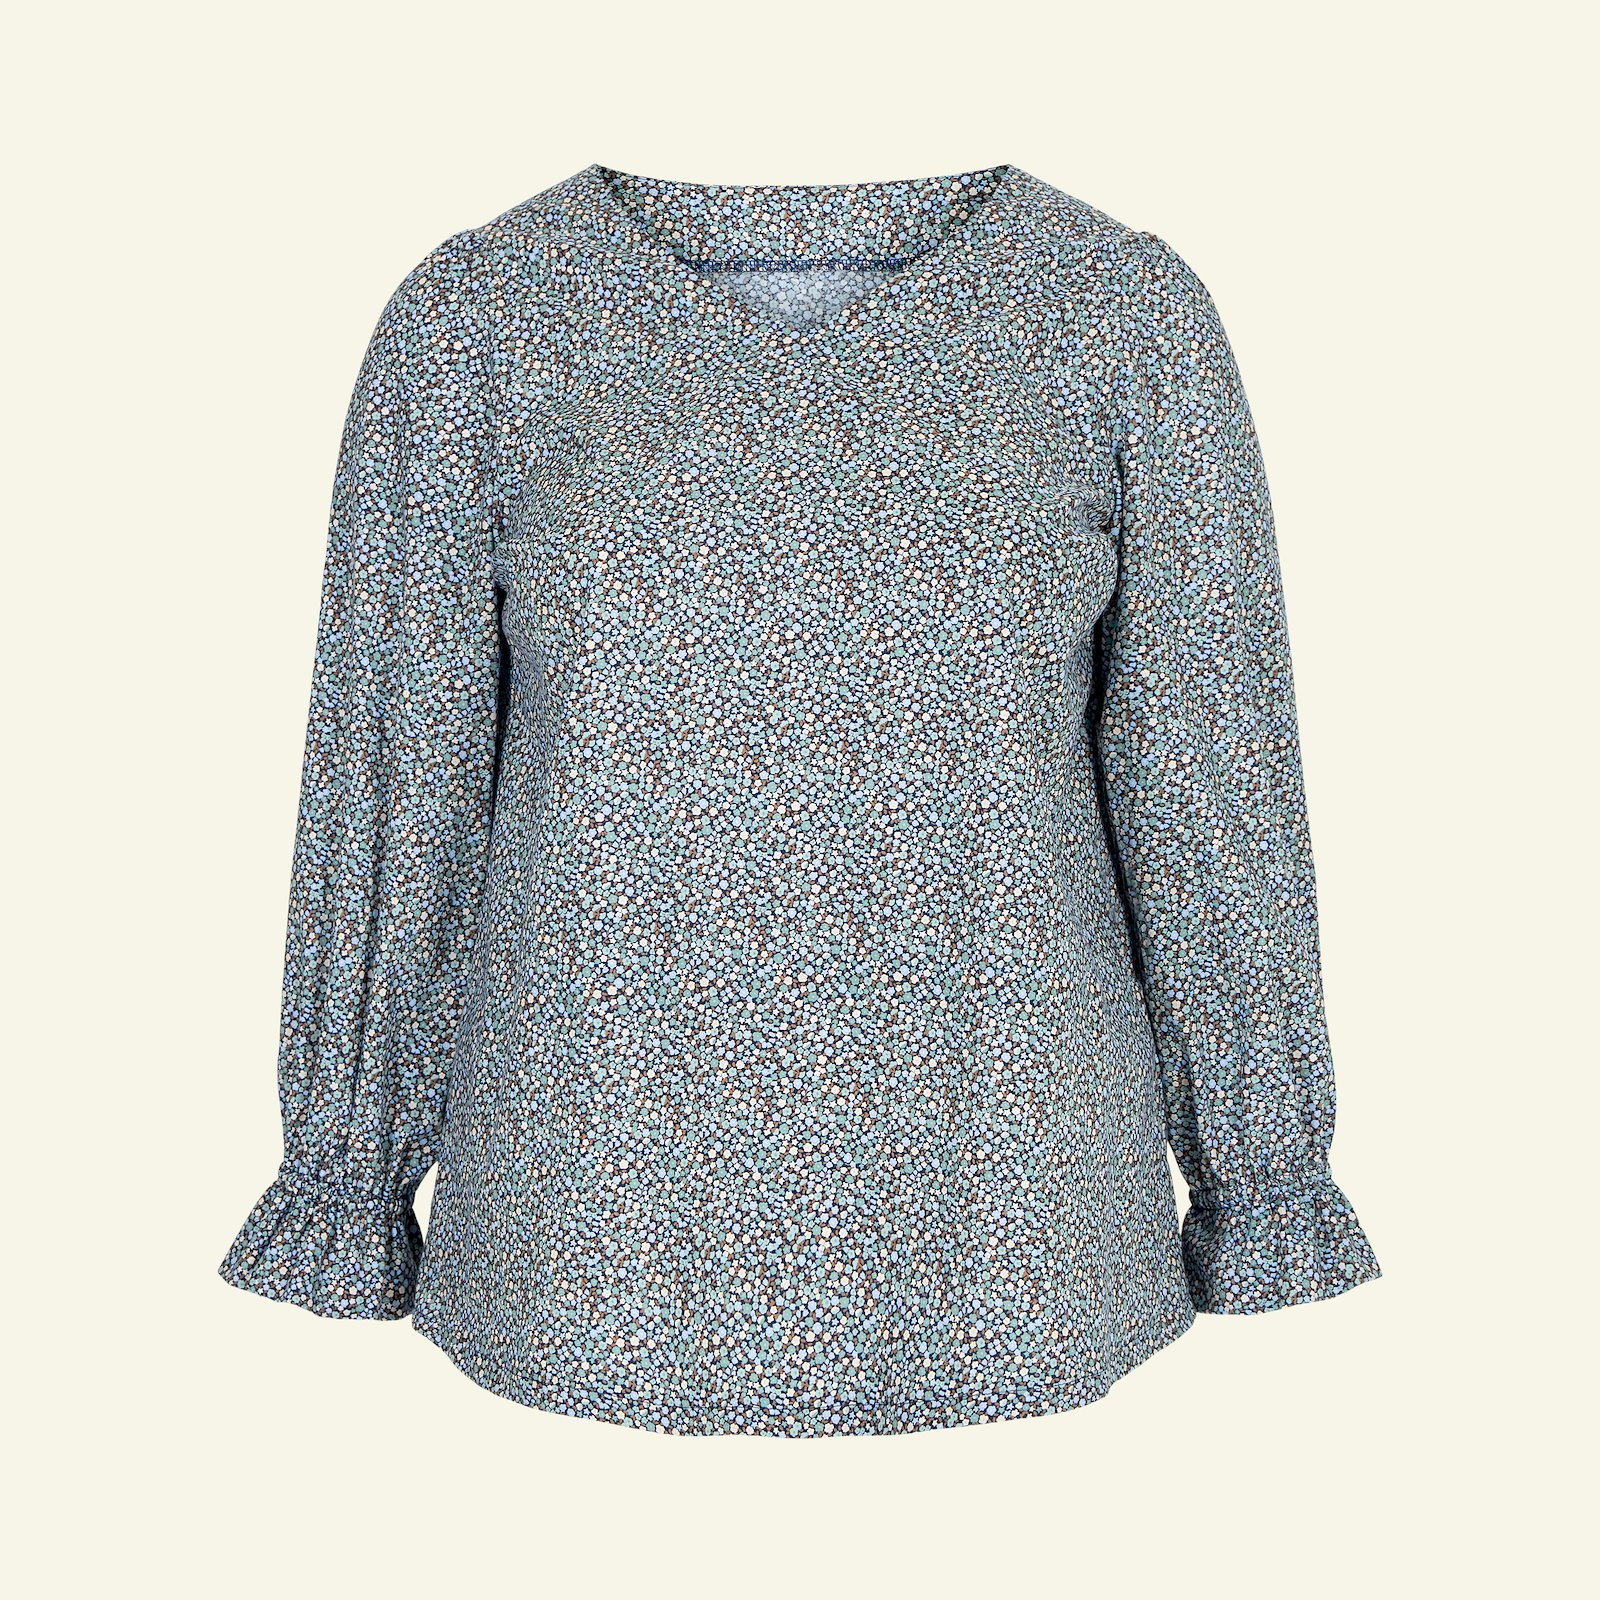 Blouse with long and short sleeve, 58/30 p72006_852408_sskit